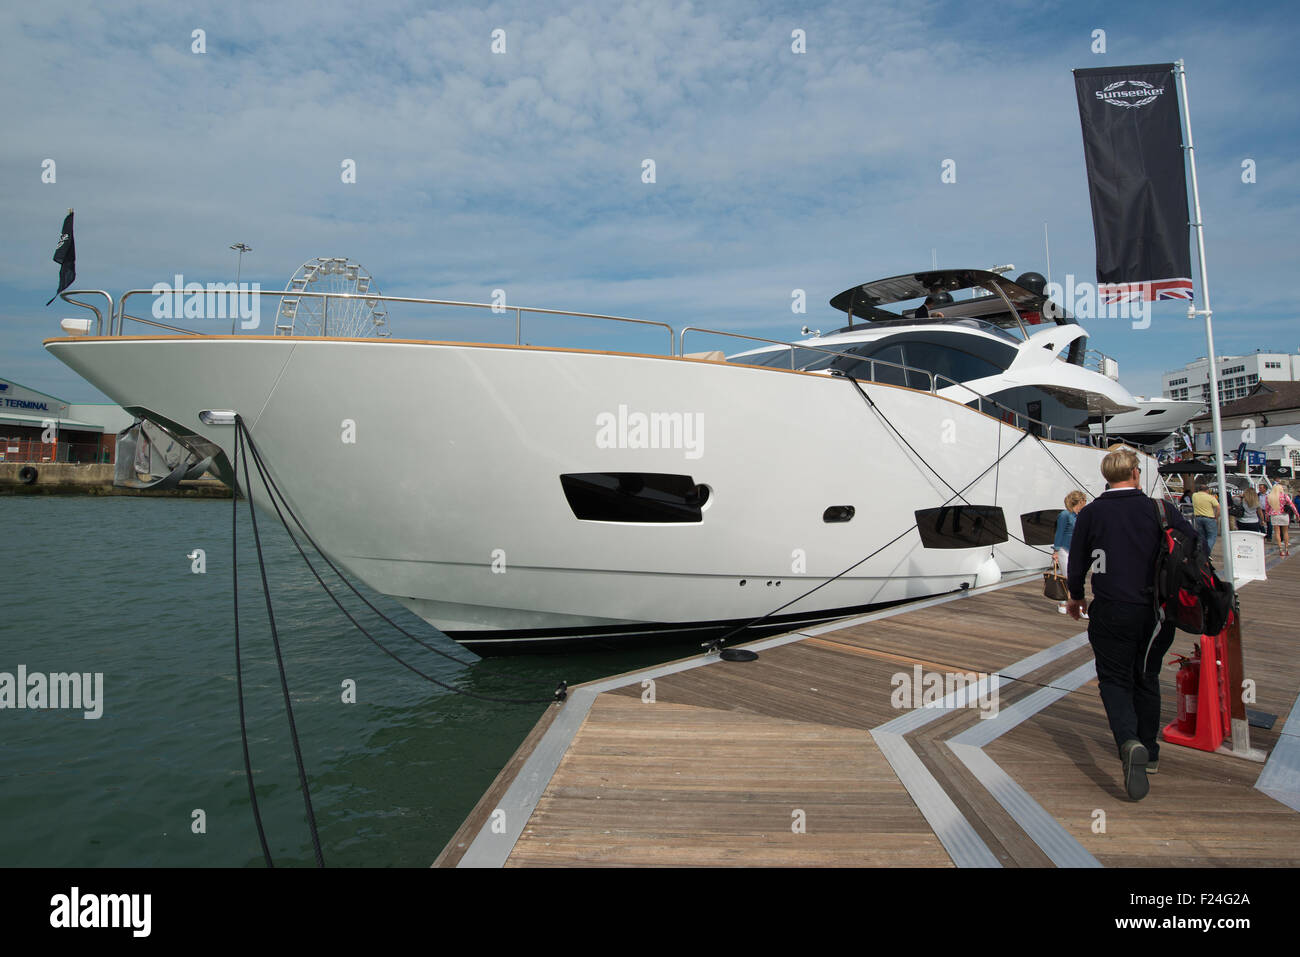 Southampton, UK. 11th September 2015. Southampton Boat Show 2015. The bow view of a Sunseeker 28 meter yacht. Credit: Stock Photo